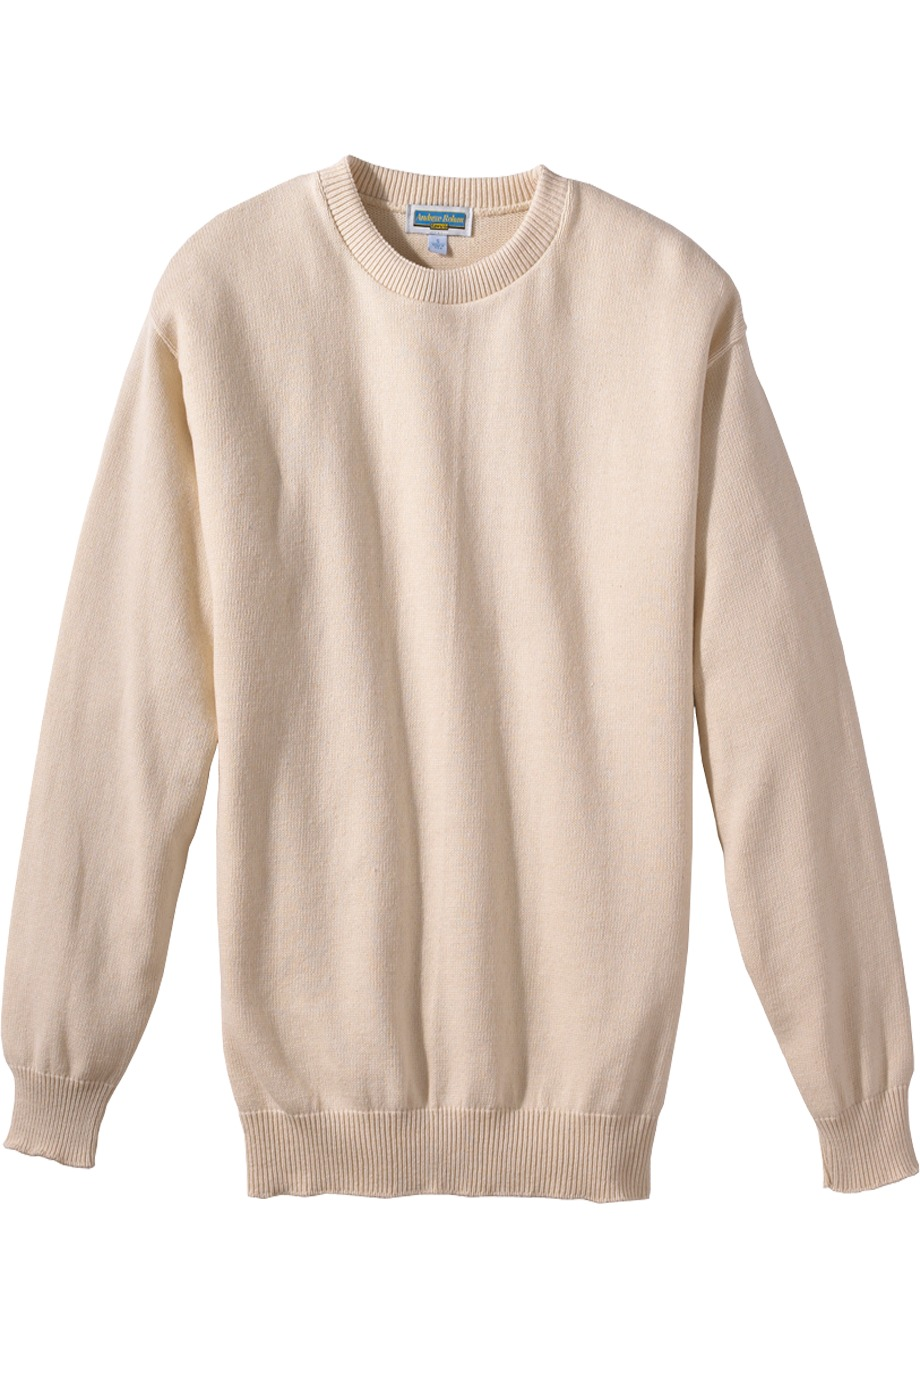 MLE786 - Mens Crew Neck Pullover Sweater